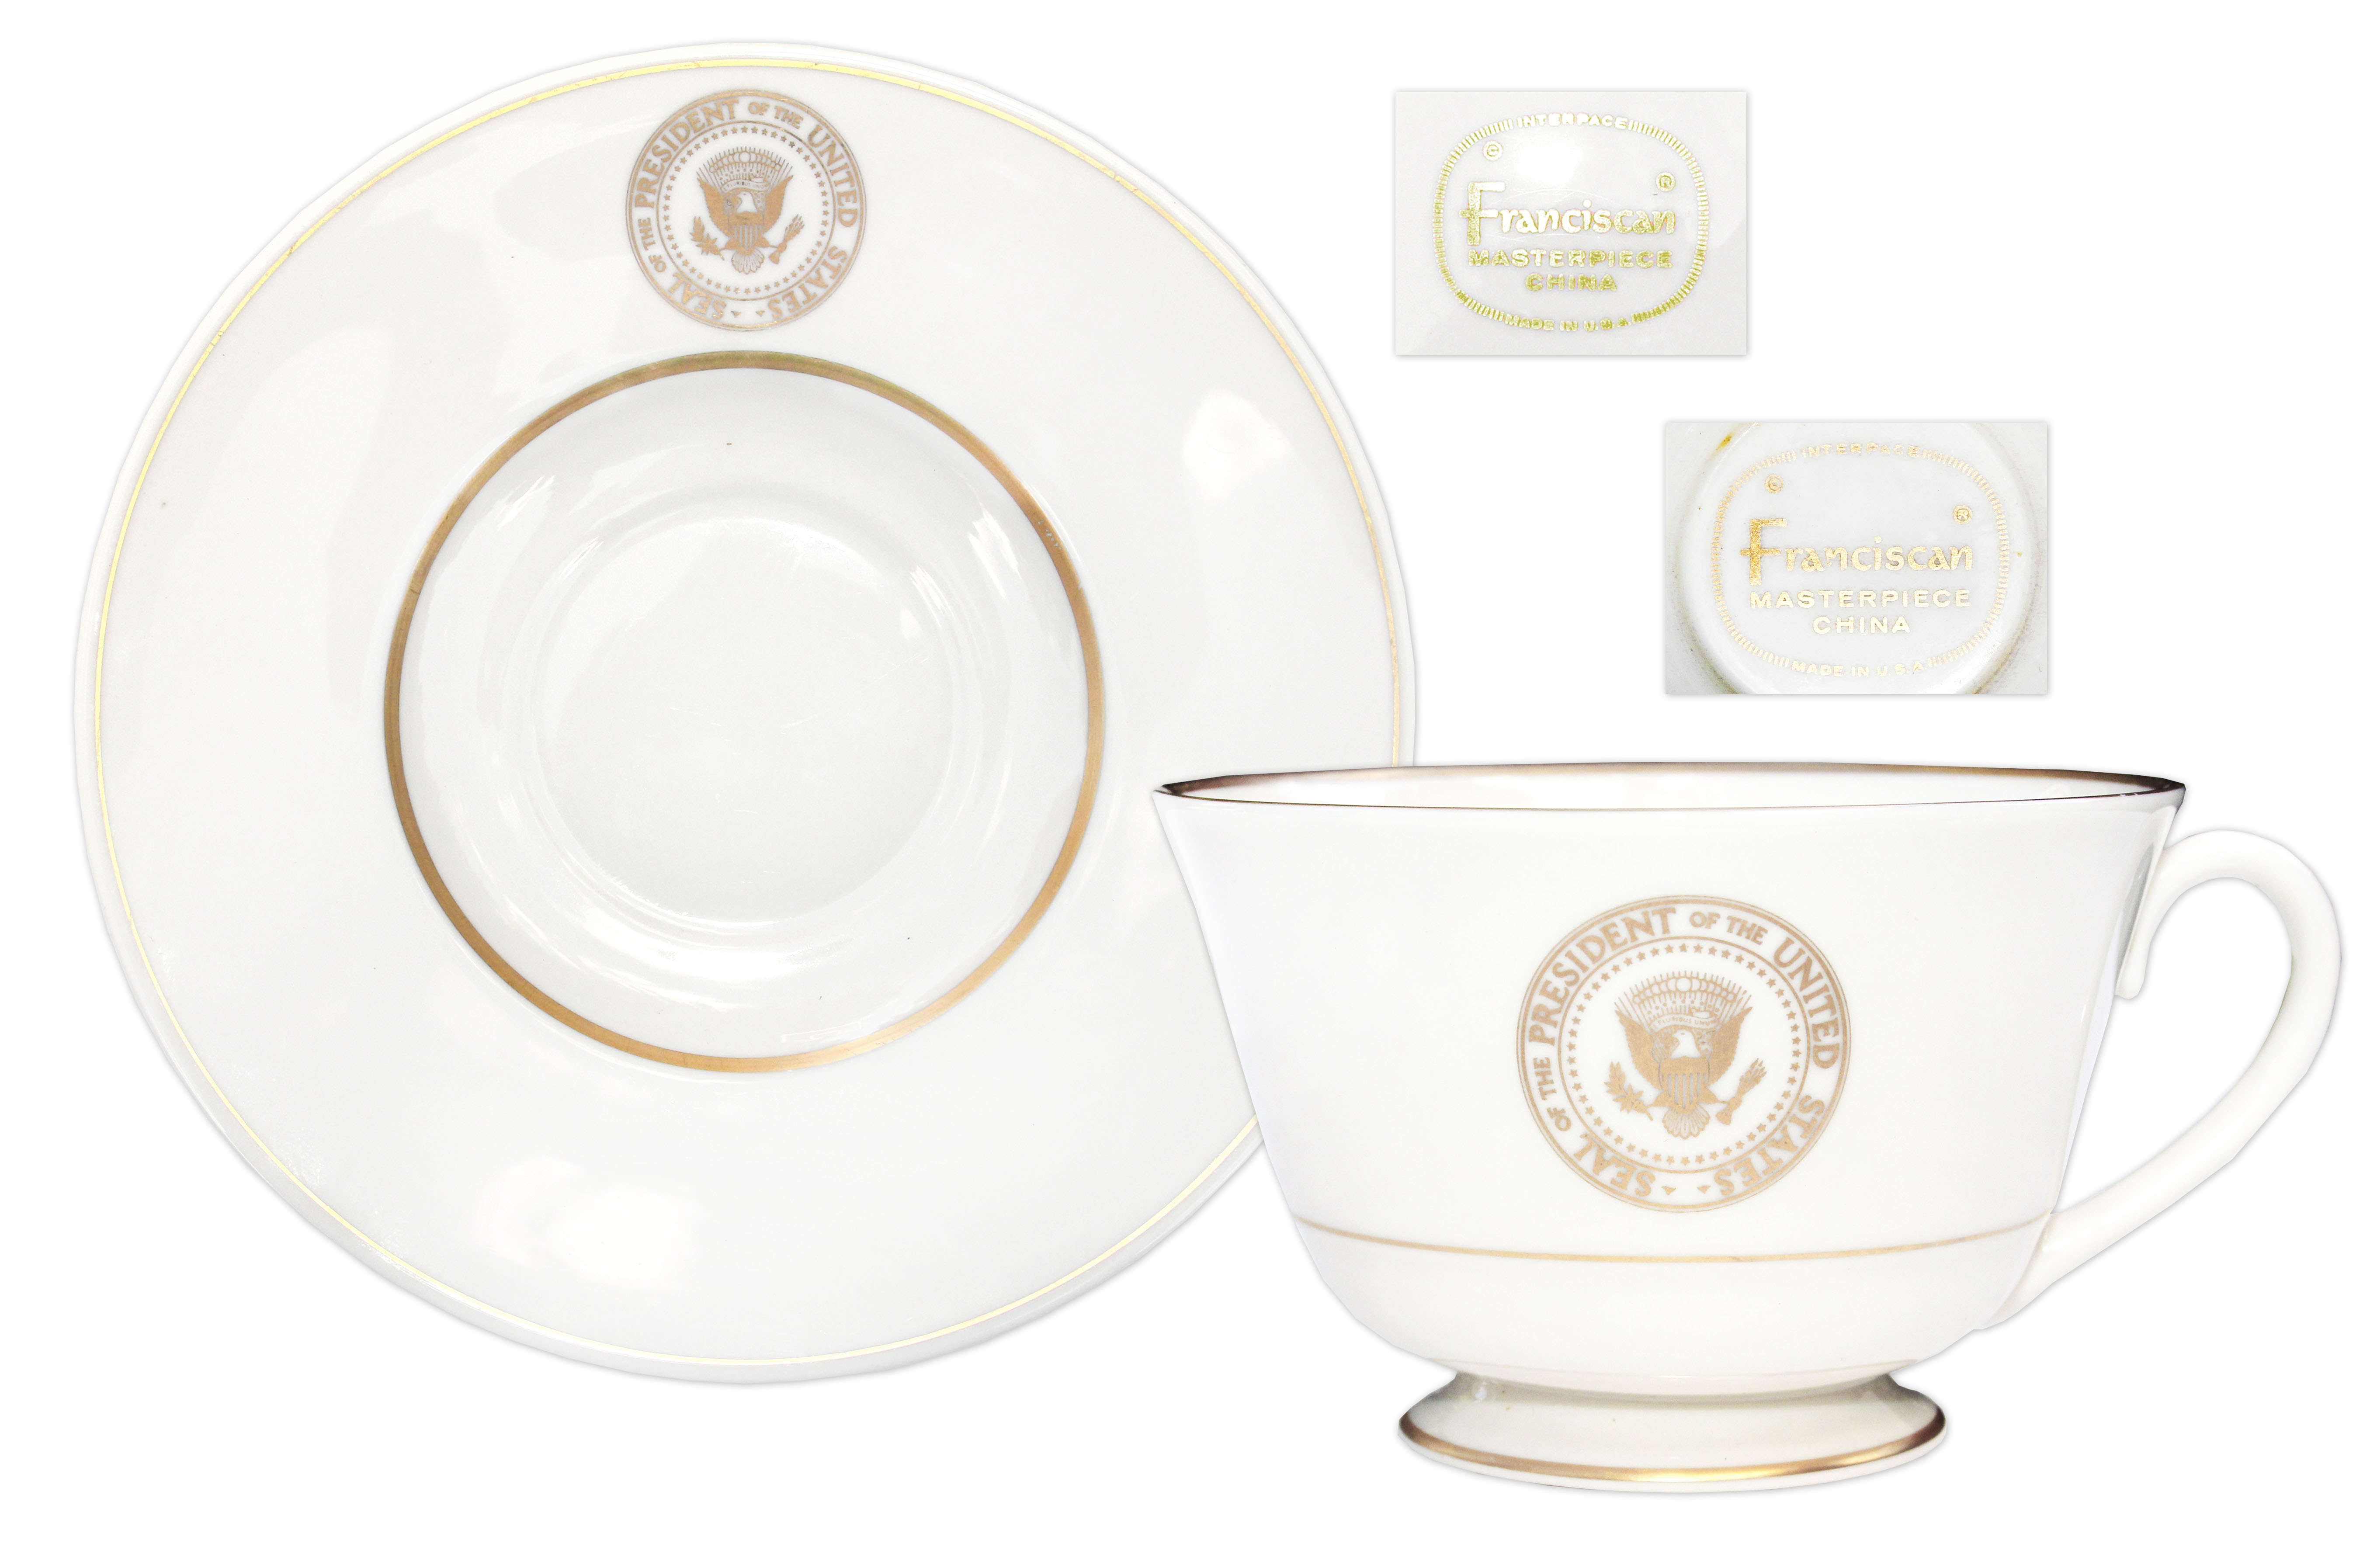 AIR FORCE ONE CHINA JFK JOHN F KENNEDY CUP SAUCER